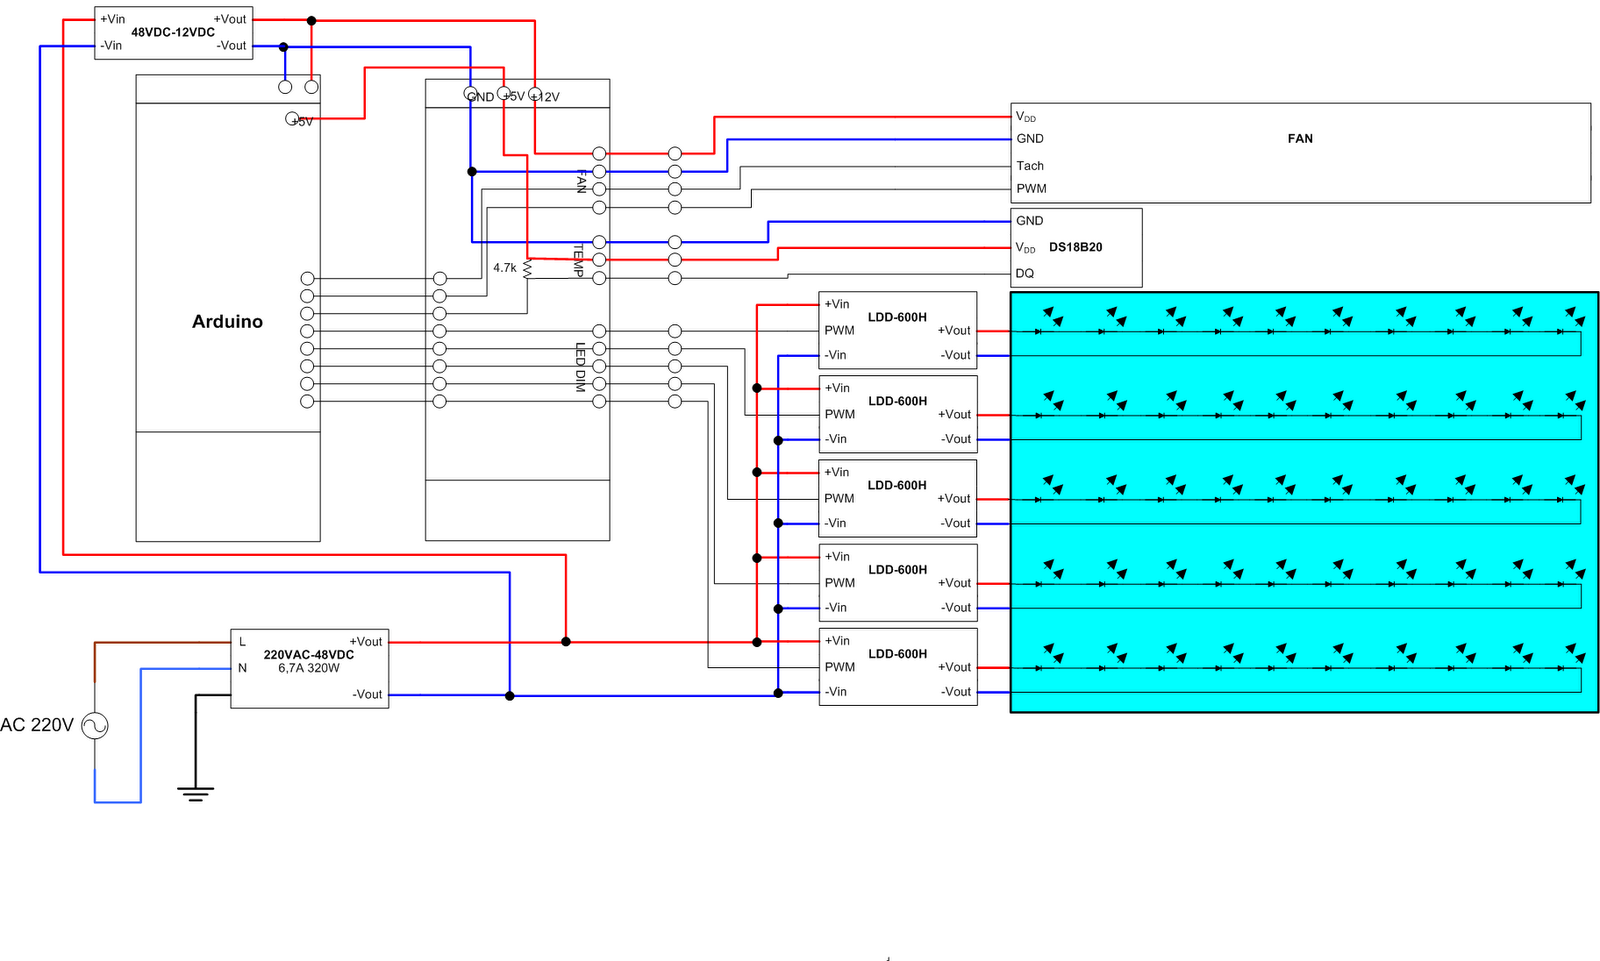 Century Motor Drum Switch Wiring Diagram besides Gould Century Motor Wiring Diagram also Put Furnace Blower On A Separate Switch 13350 additionally Lasko Oscillating Fan Switch Wiring Diagram besides Index. on 2 sd electric motor wiring diagram